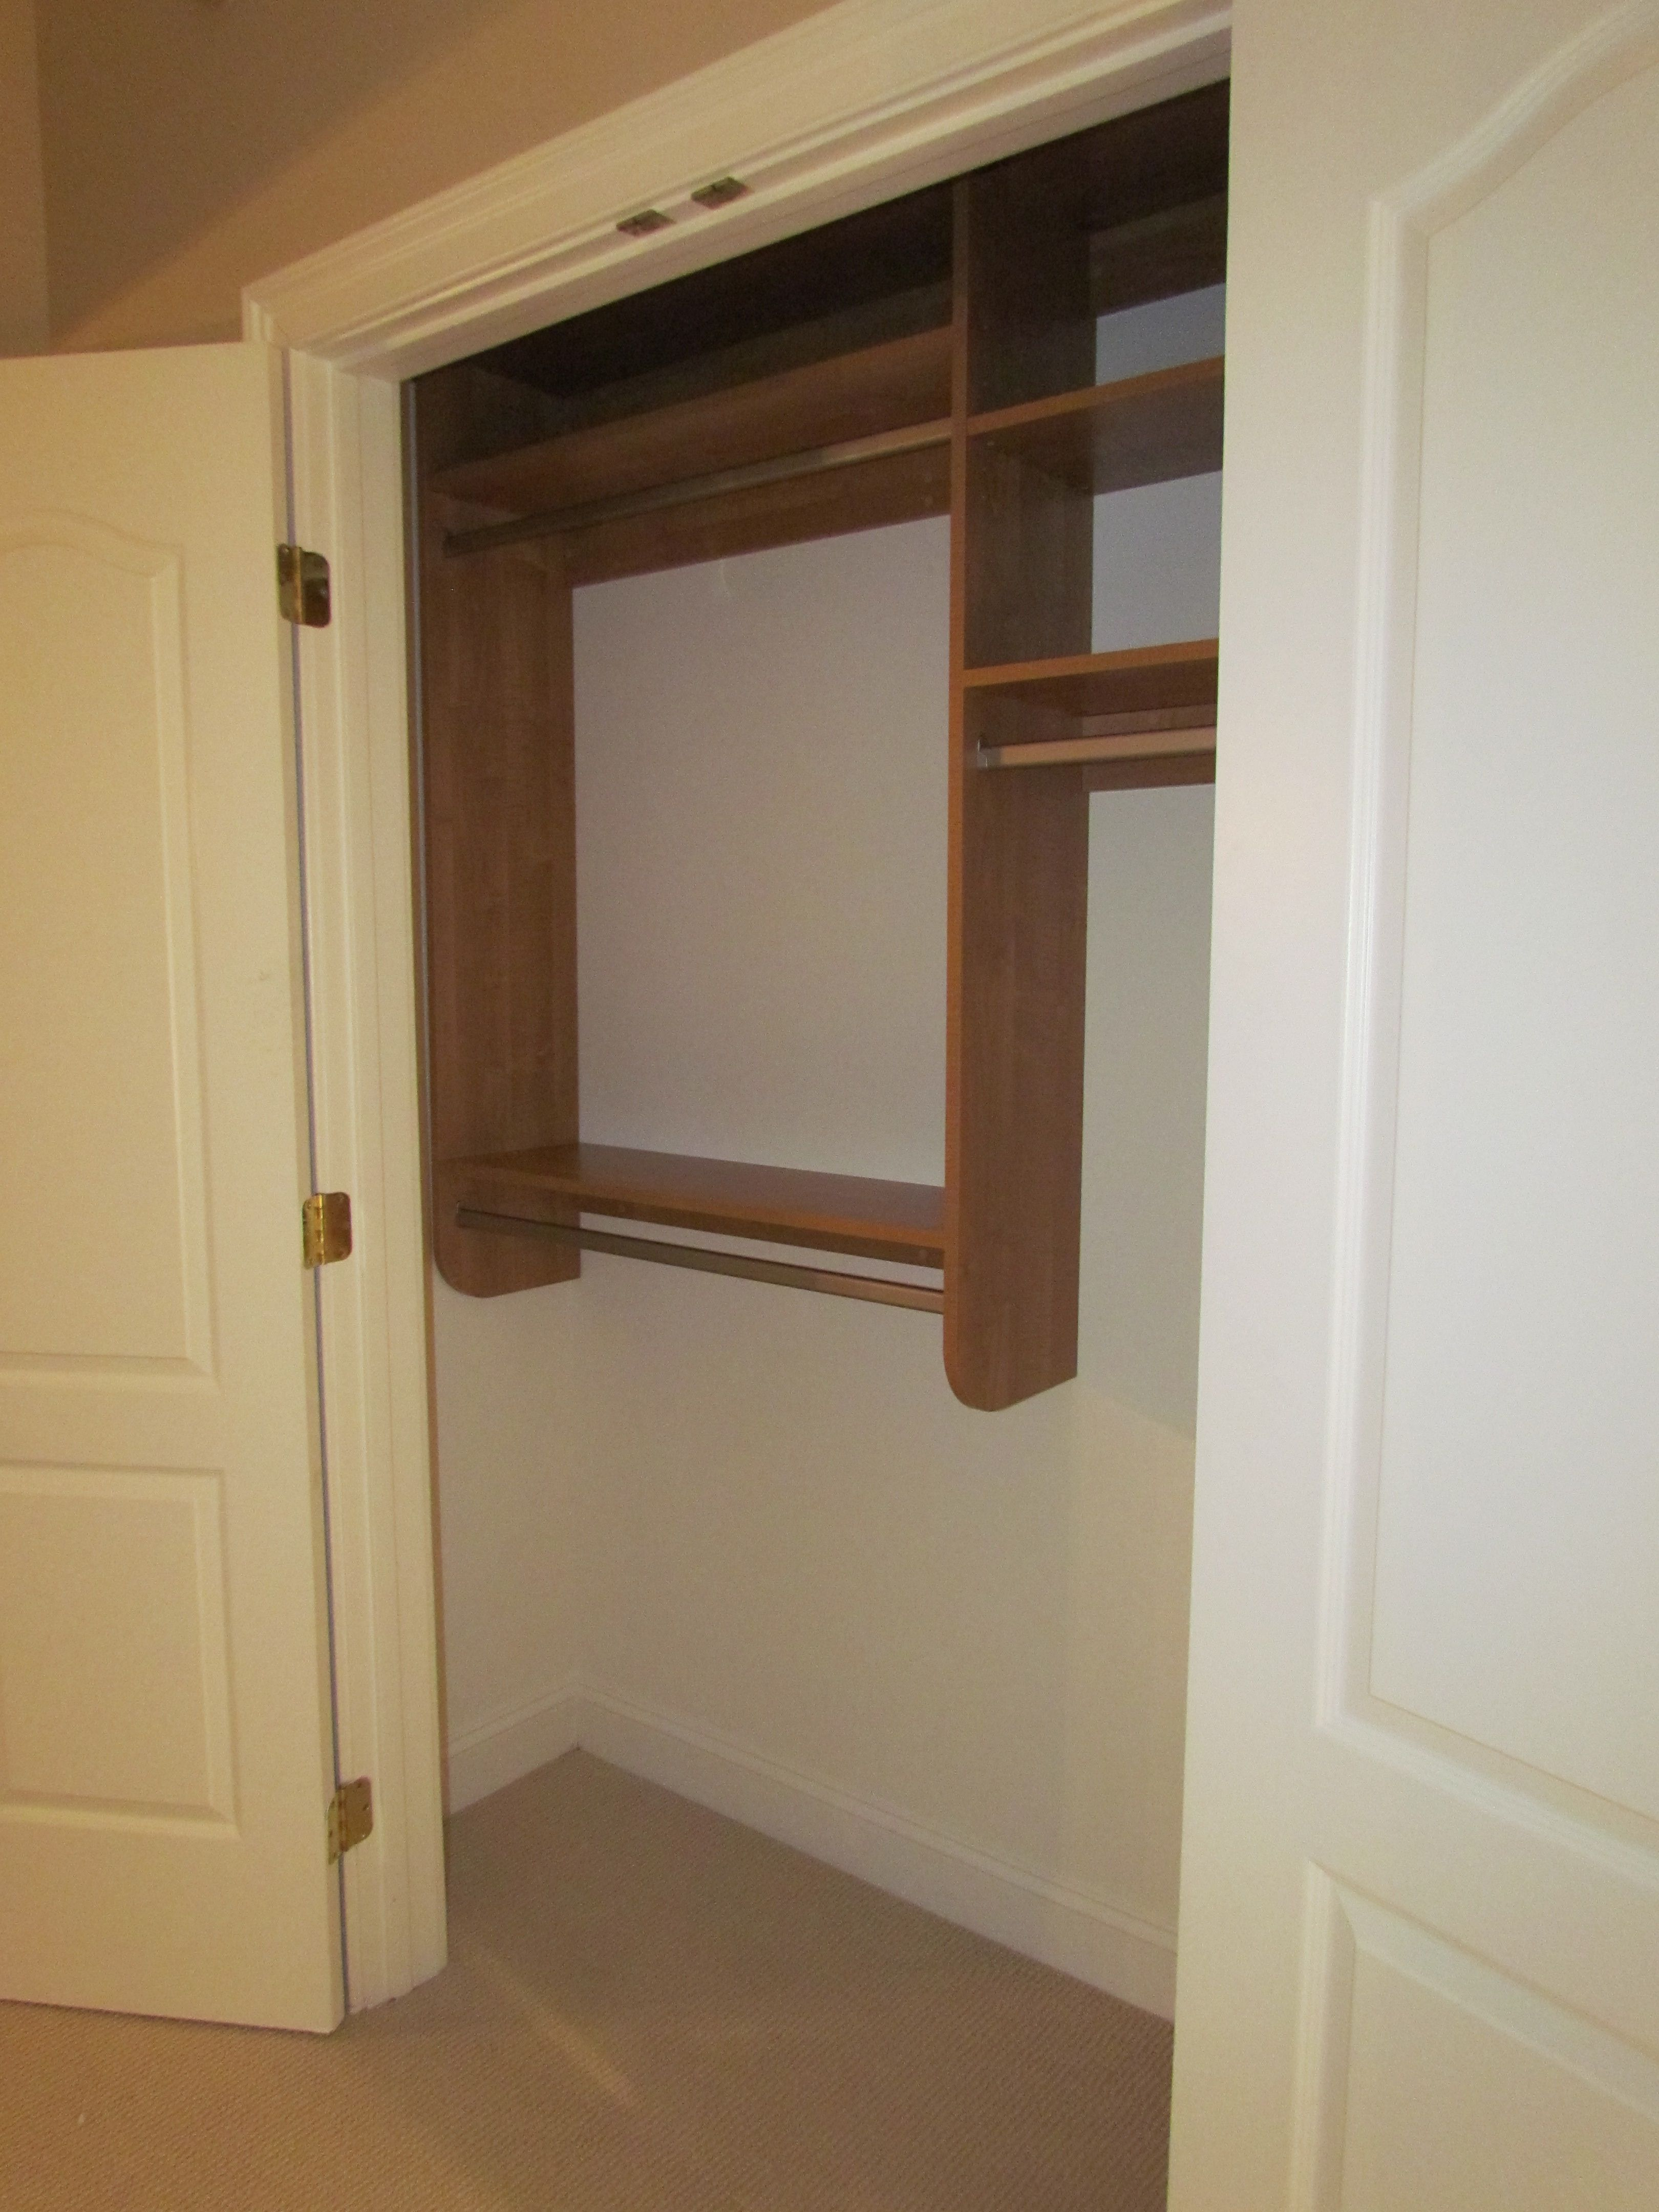 A Mix Of Double Hang And Long Hang Is A Very Functional And Affordable  Custom Closet Design.